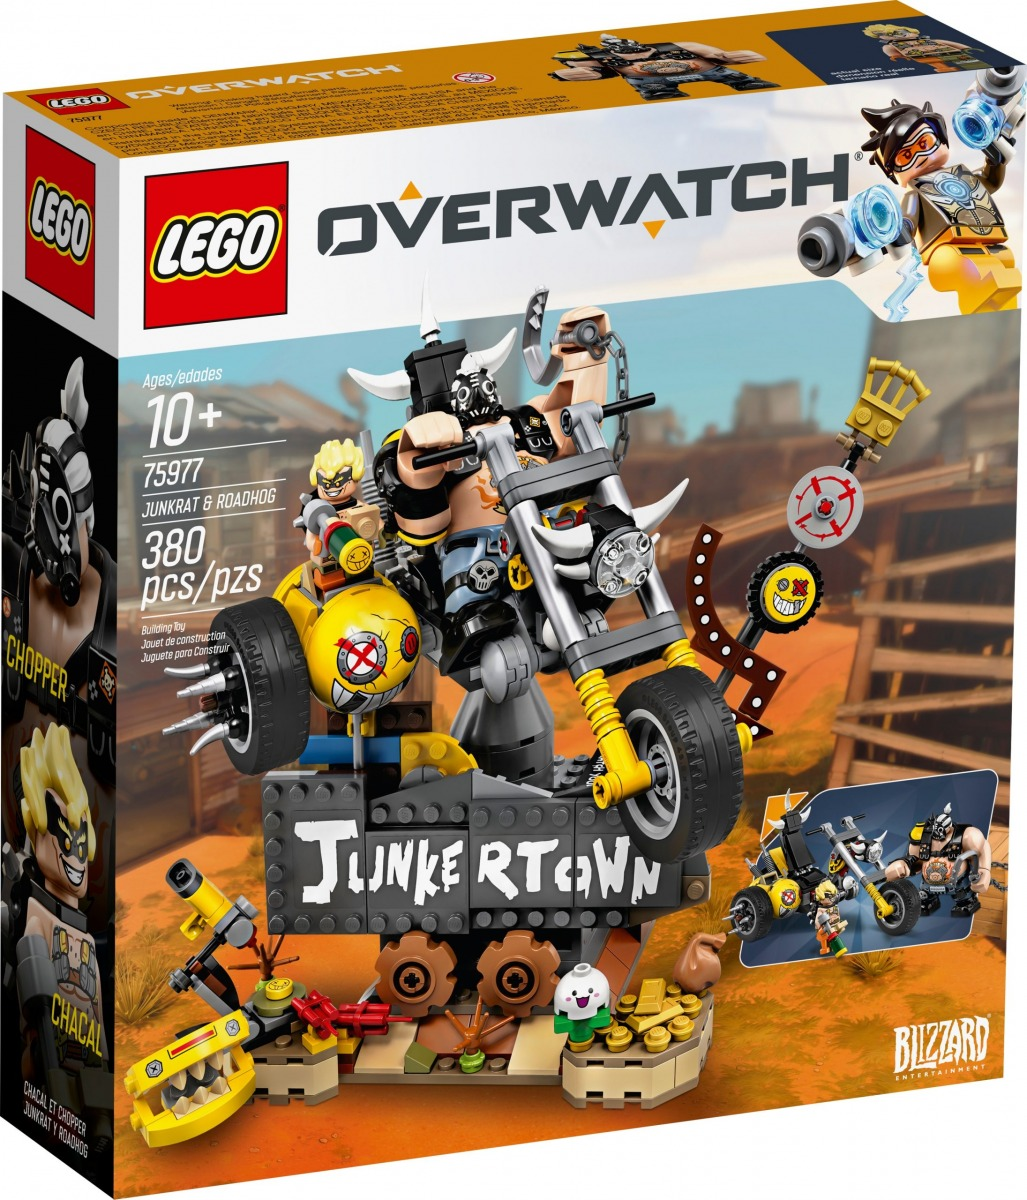 lego 75977 junkrat y roadhog scaled